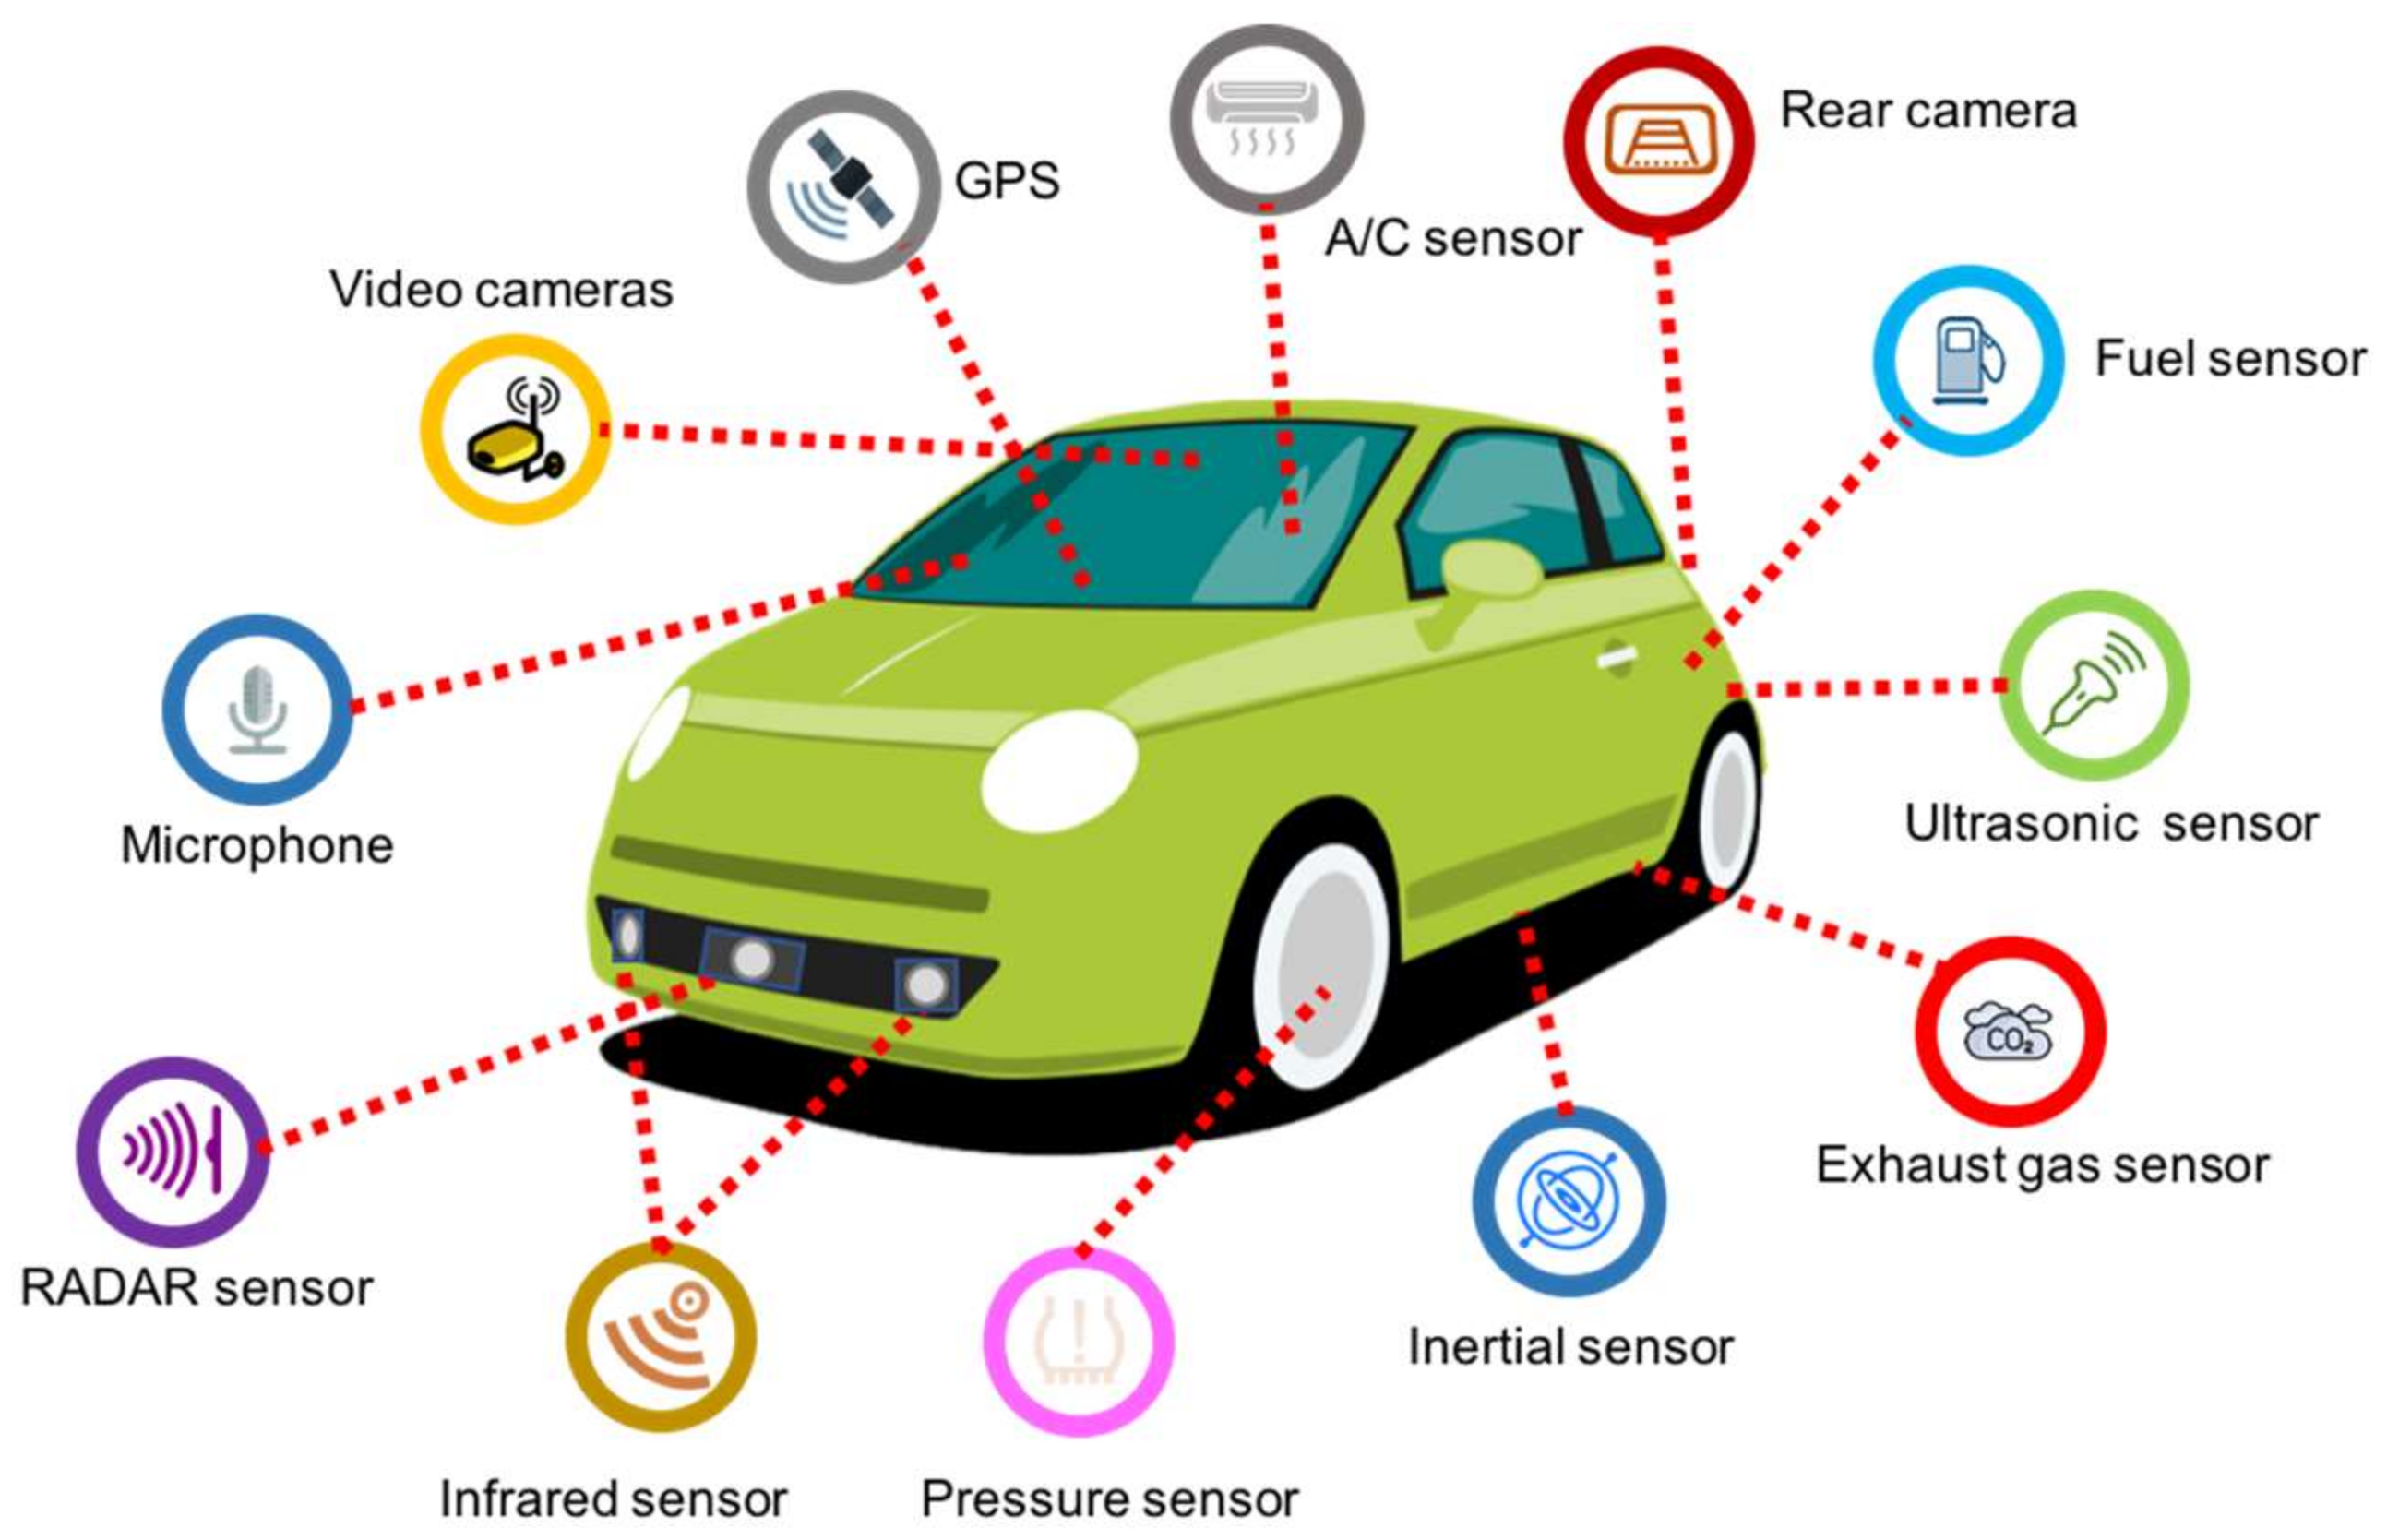 What are Different Types of Sensors used in Vehicles in 2021?